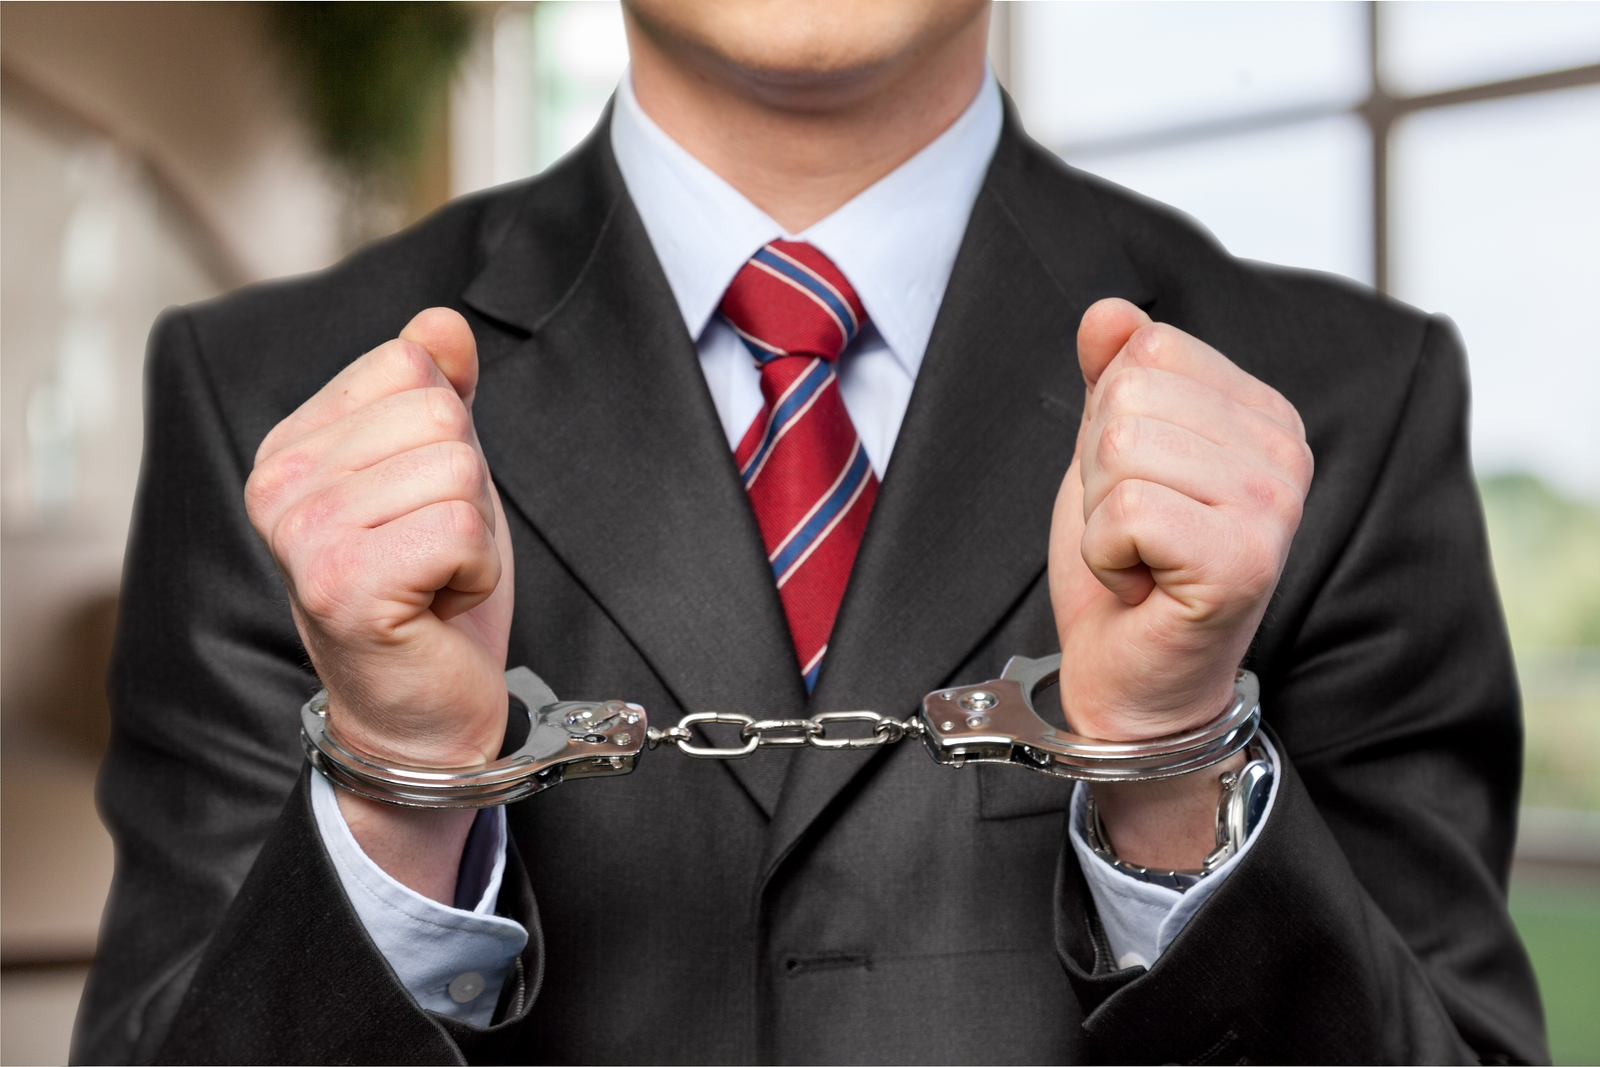 Is It A Crime Or A Delinquency?